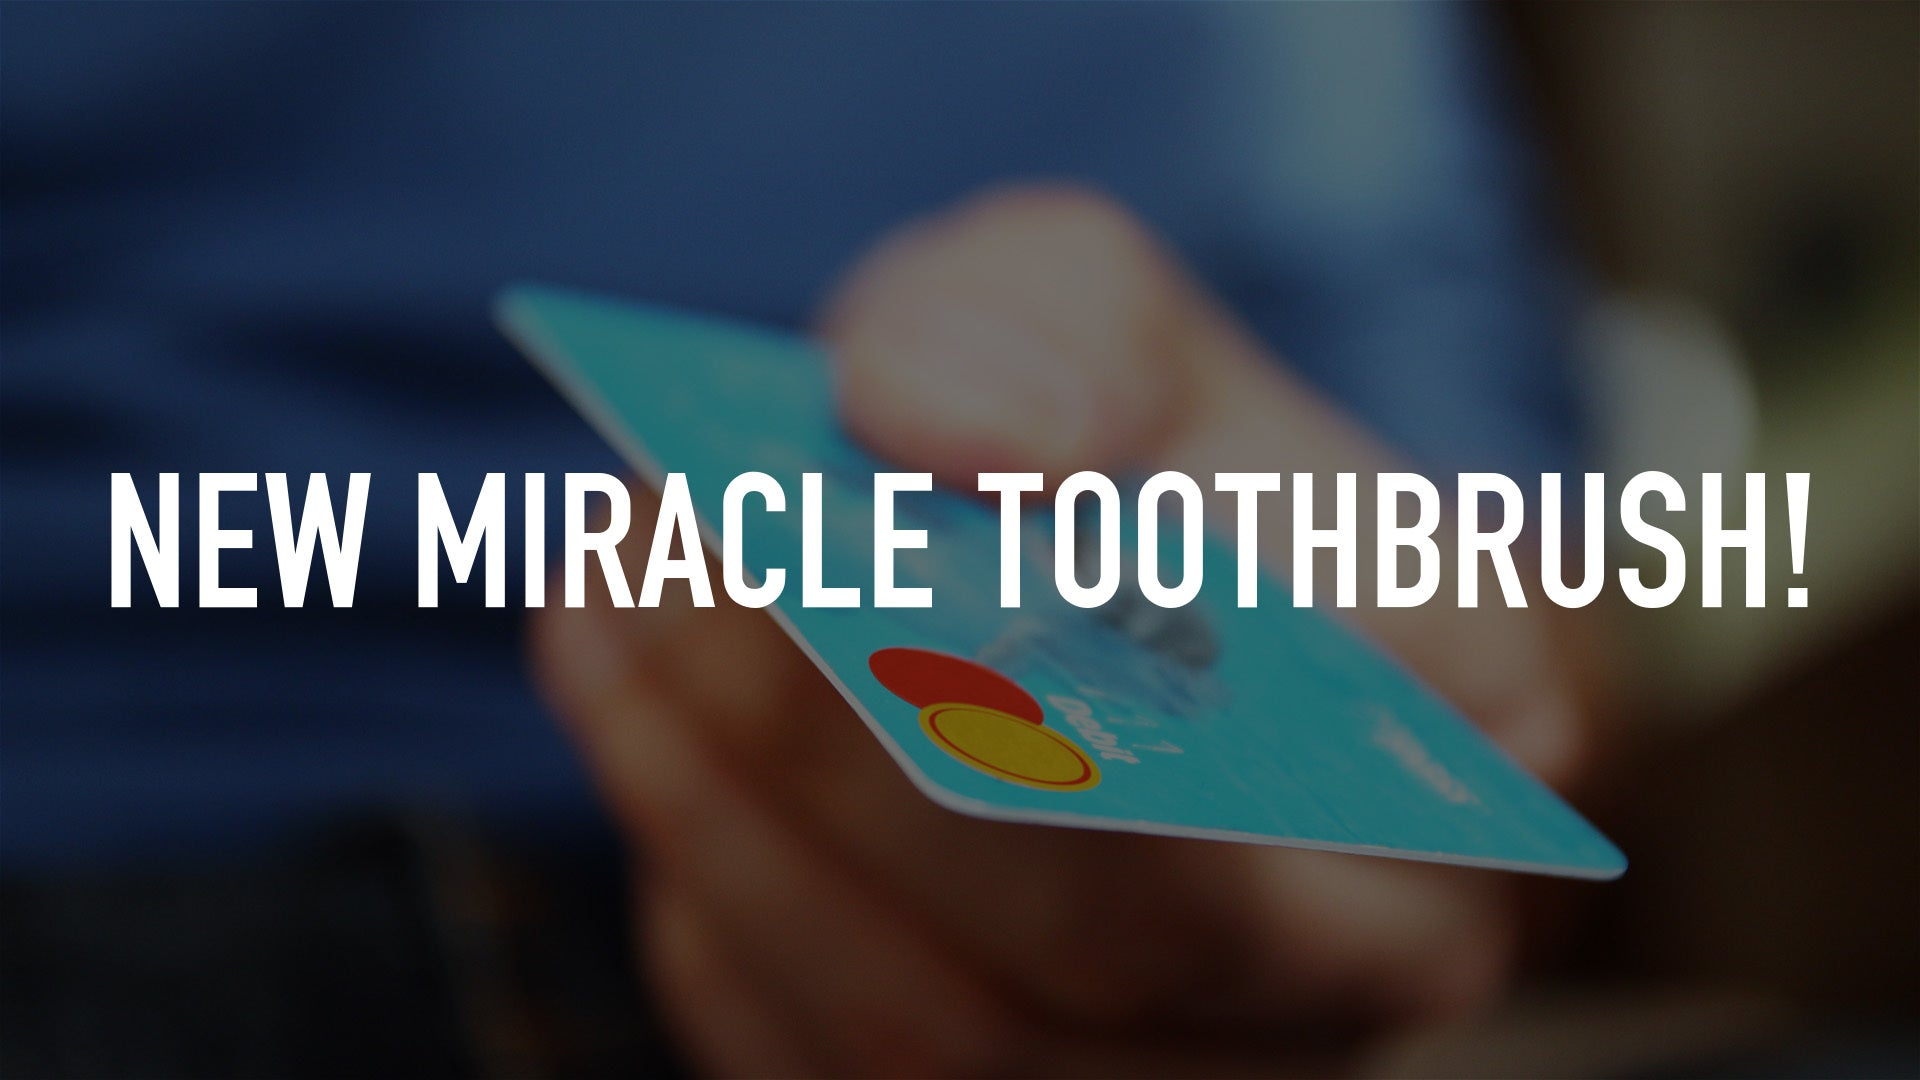 New Miracle Toothbrush!